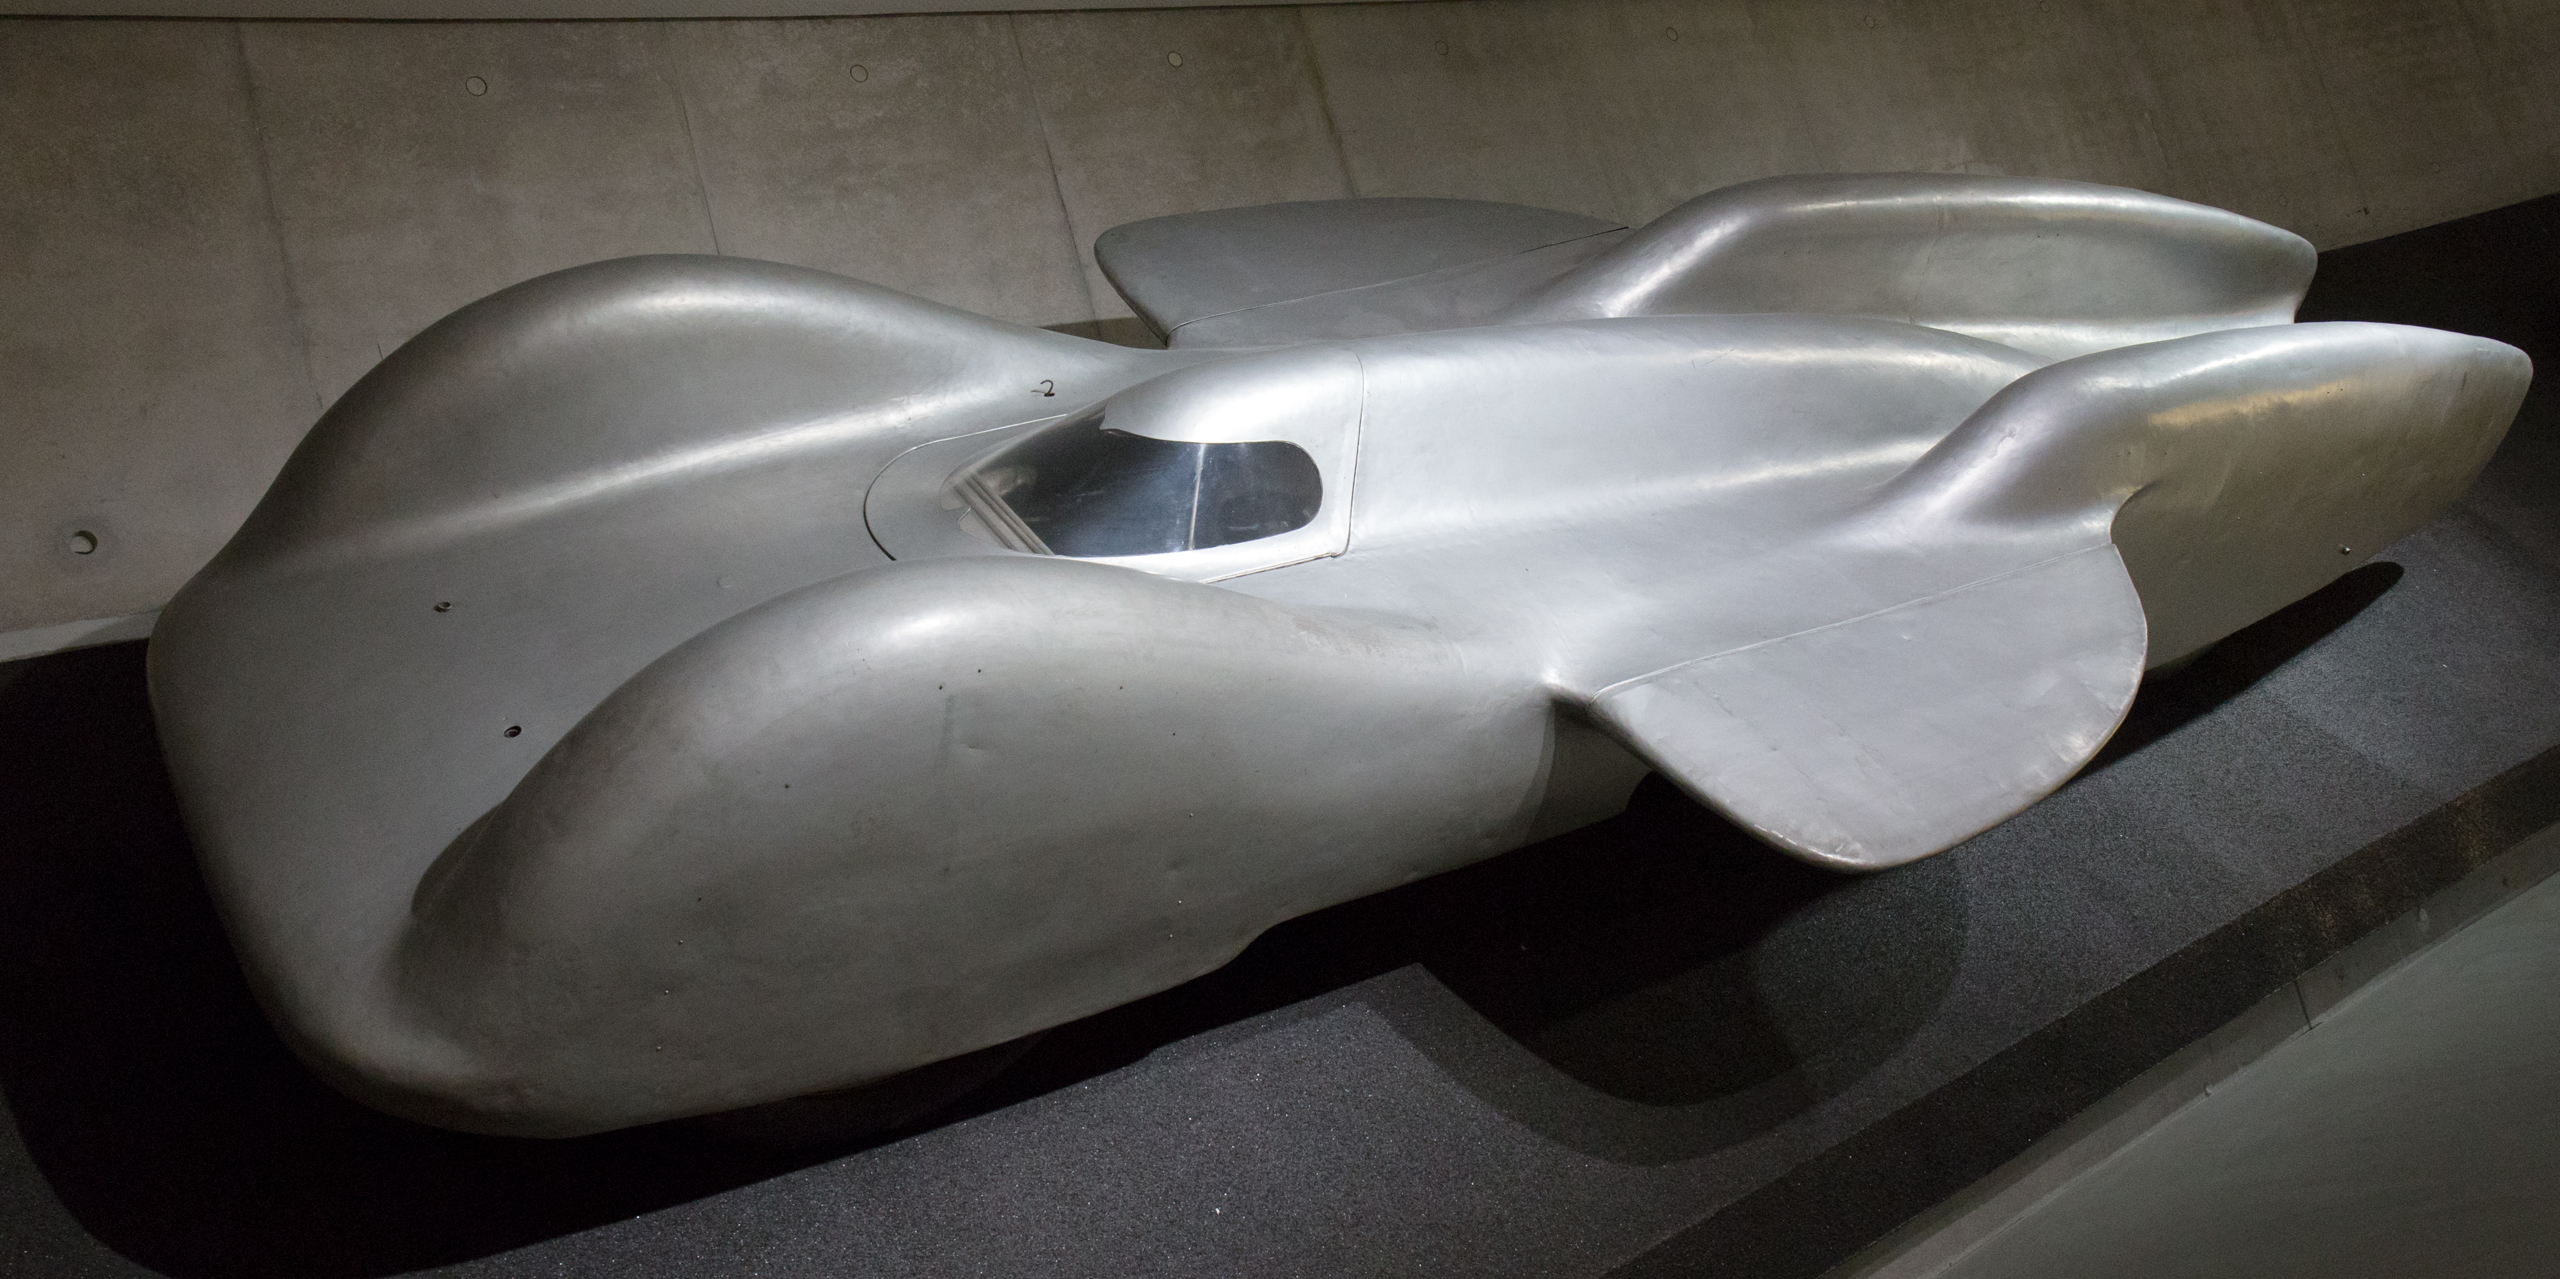 Mercedes-benz t80 photo - 2